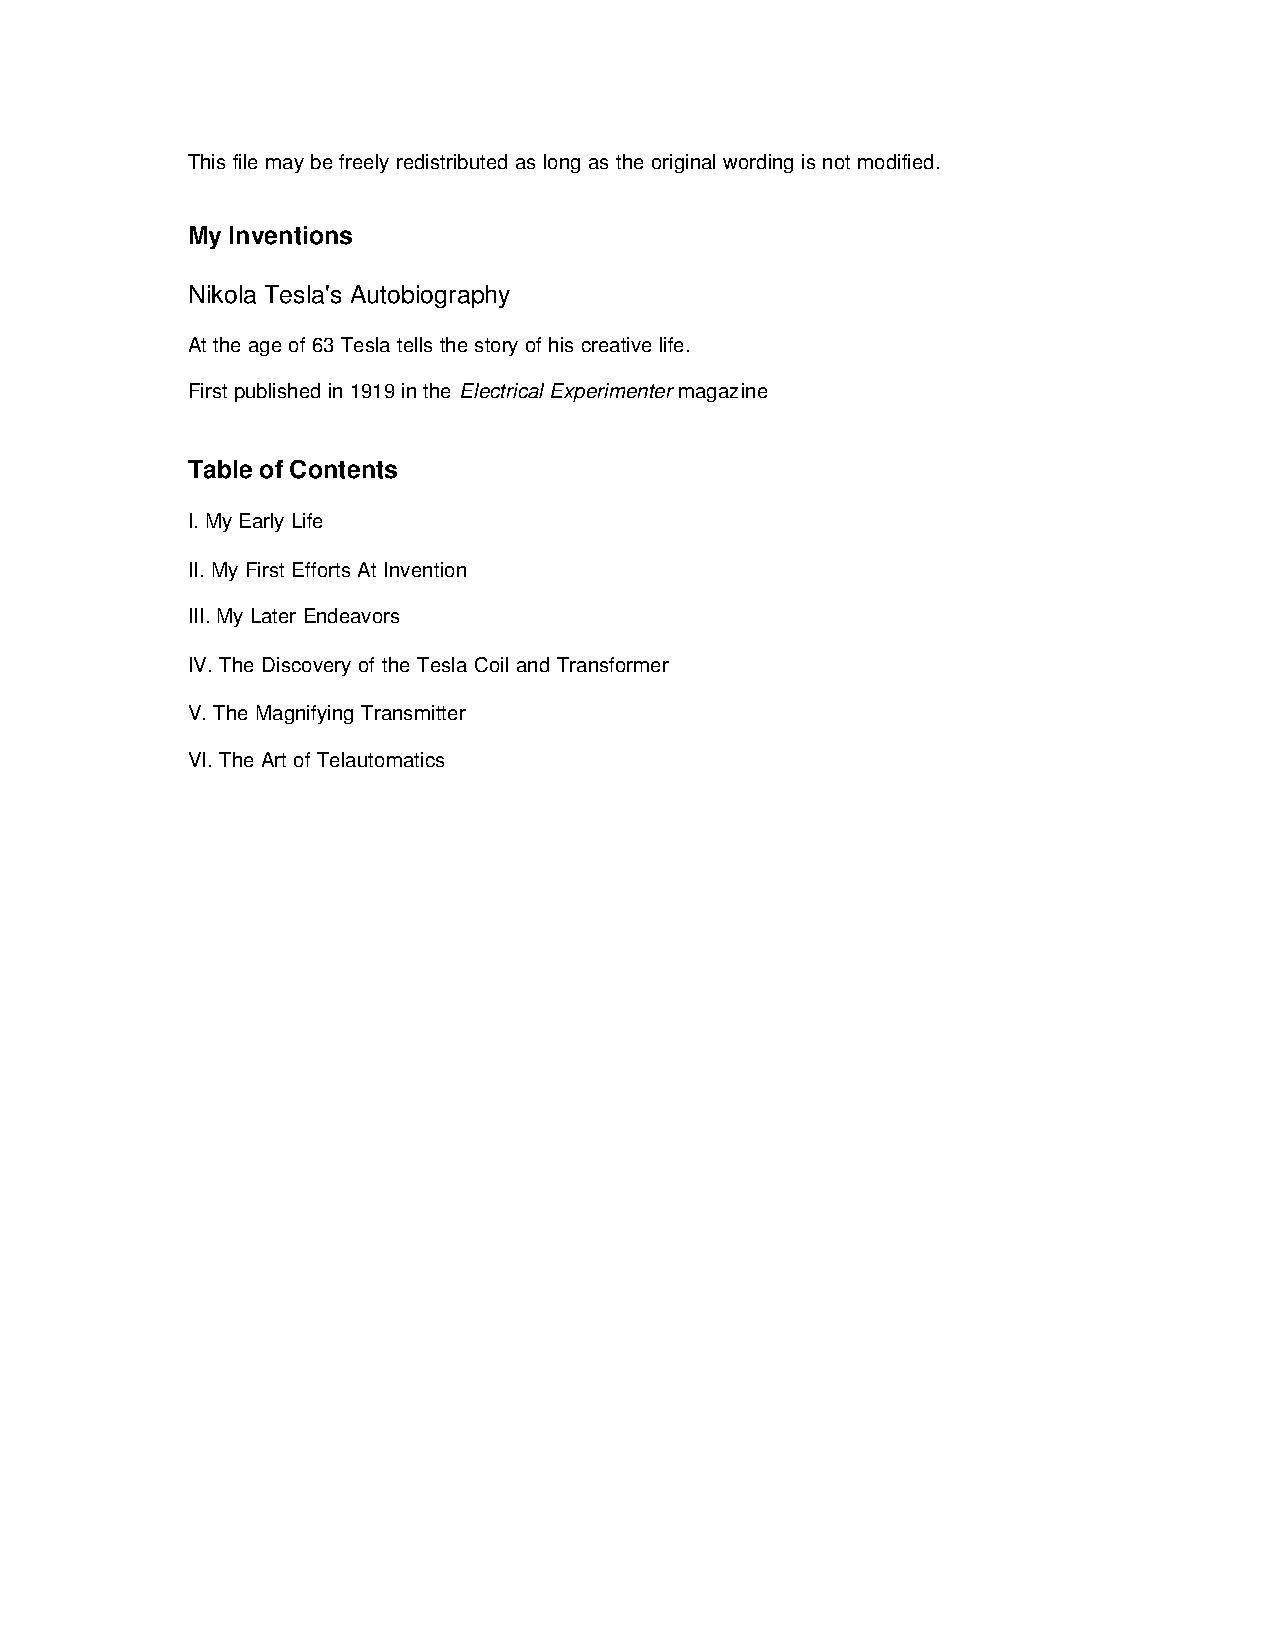 Life my of of the file pdf story